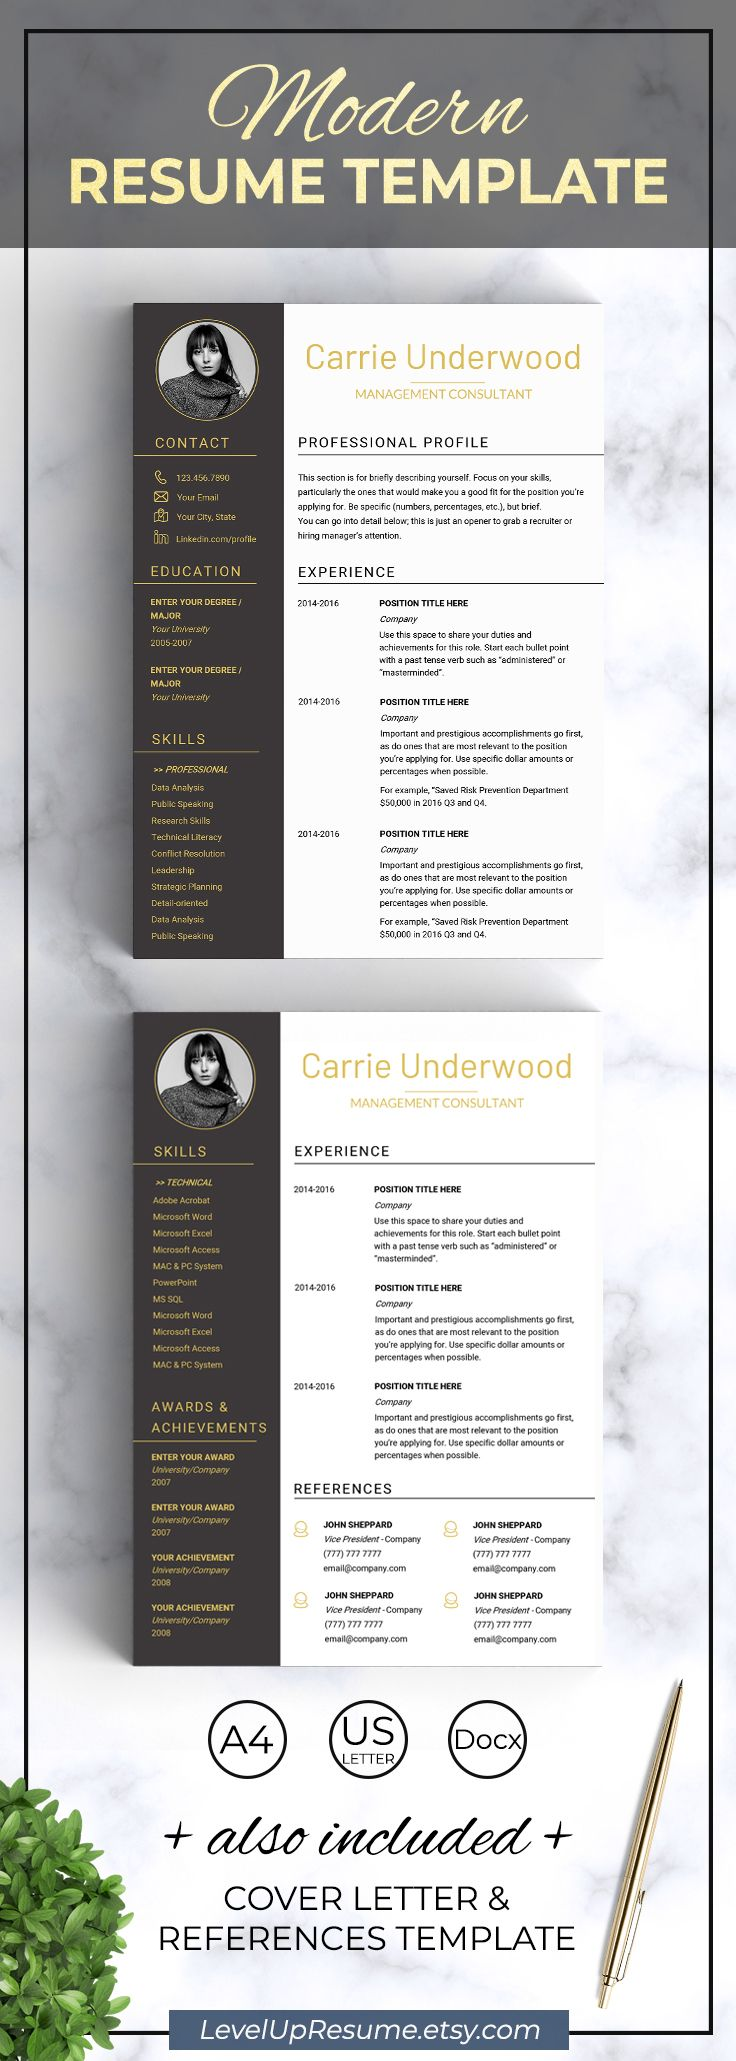 Resume Template Modern Resume With Photo Design Resume Templates Cv